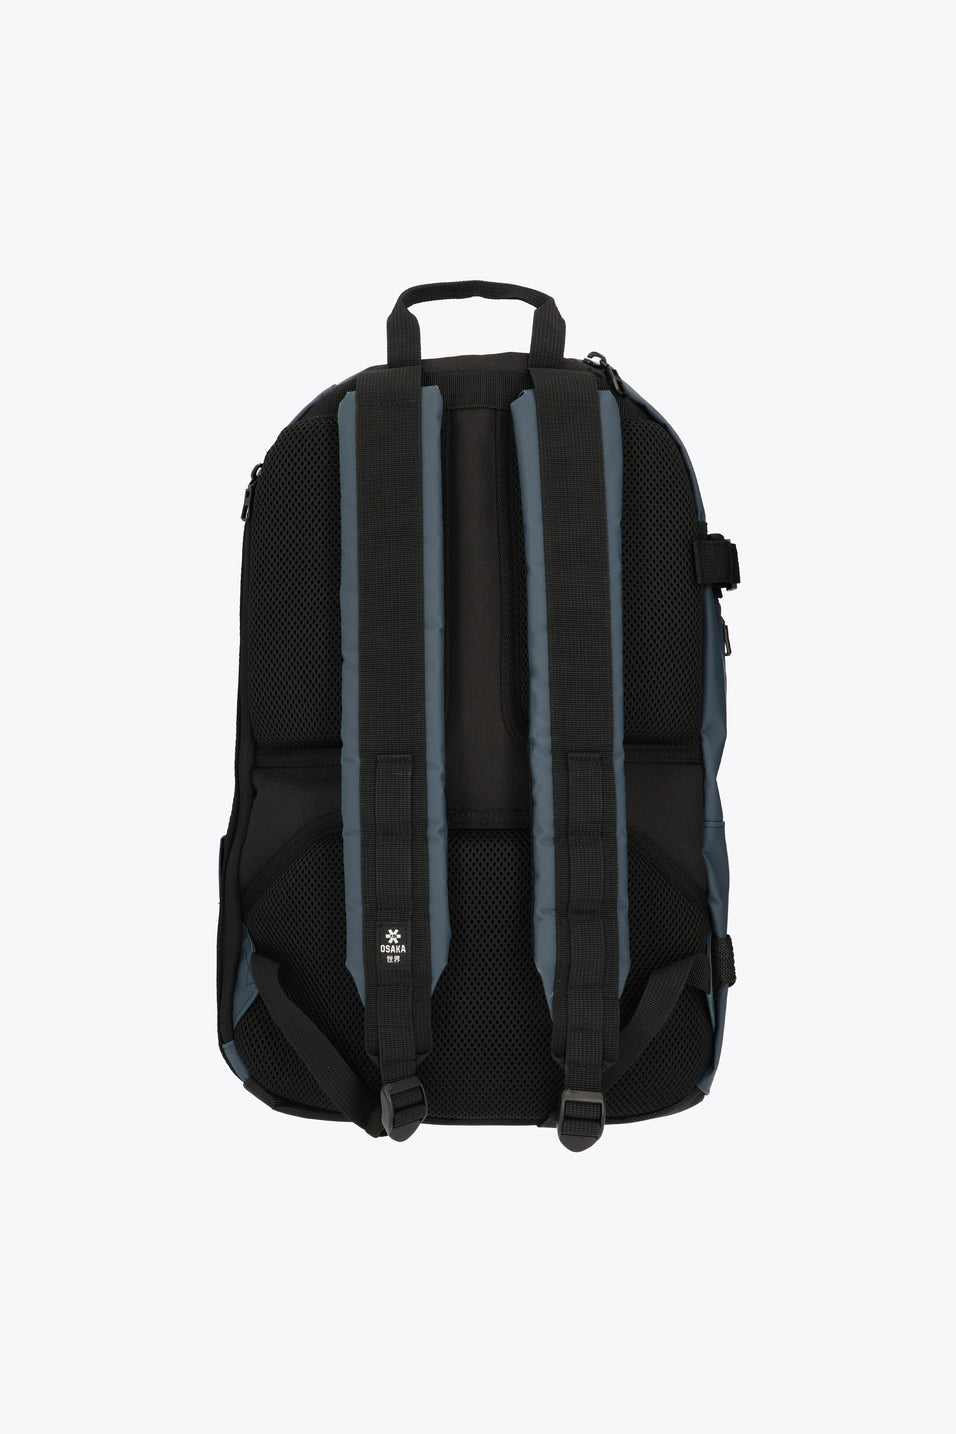 new osaka backpack